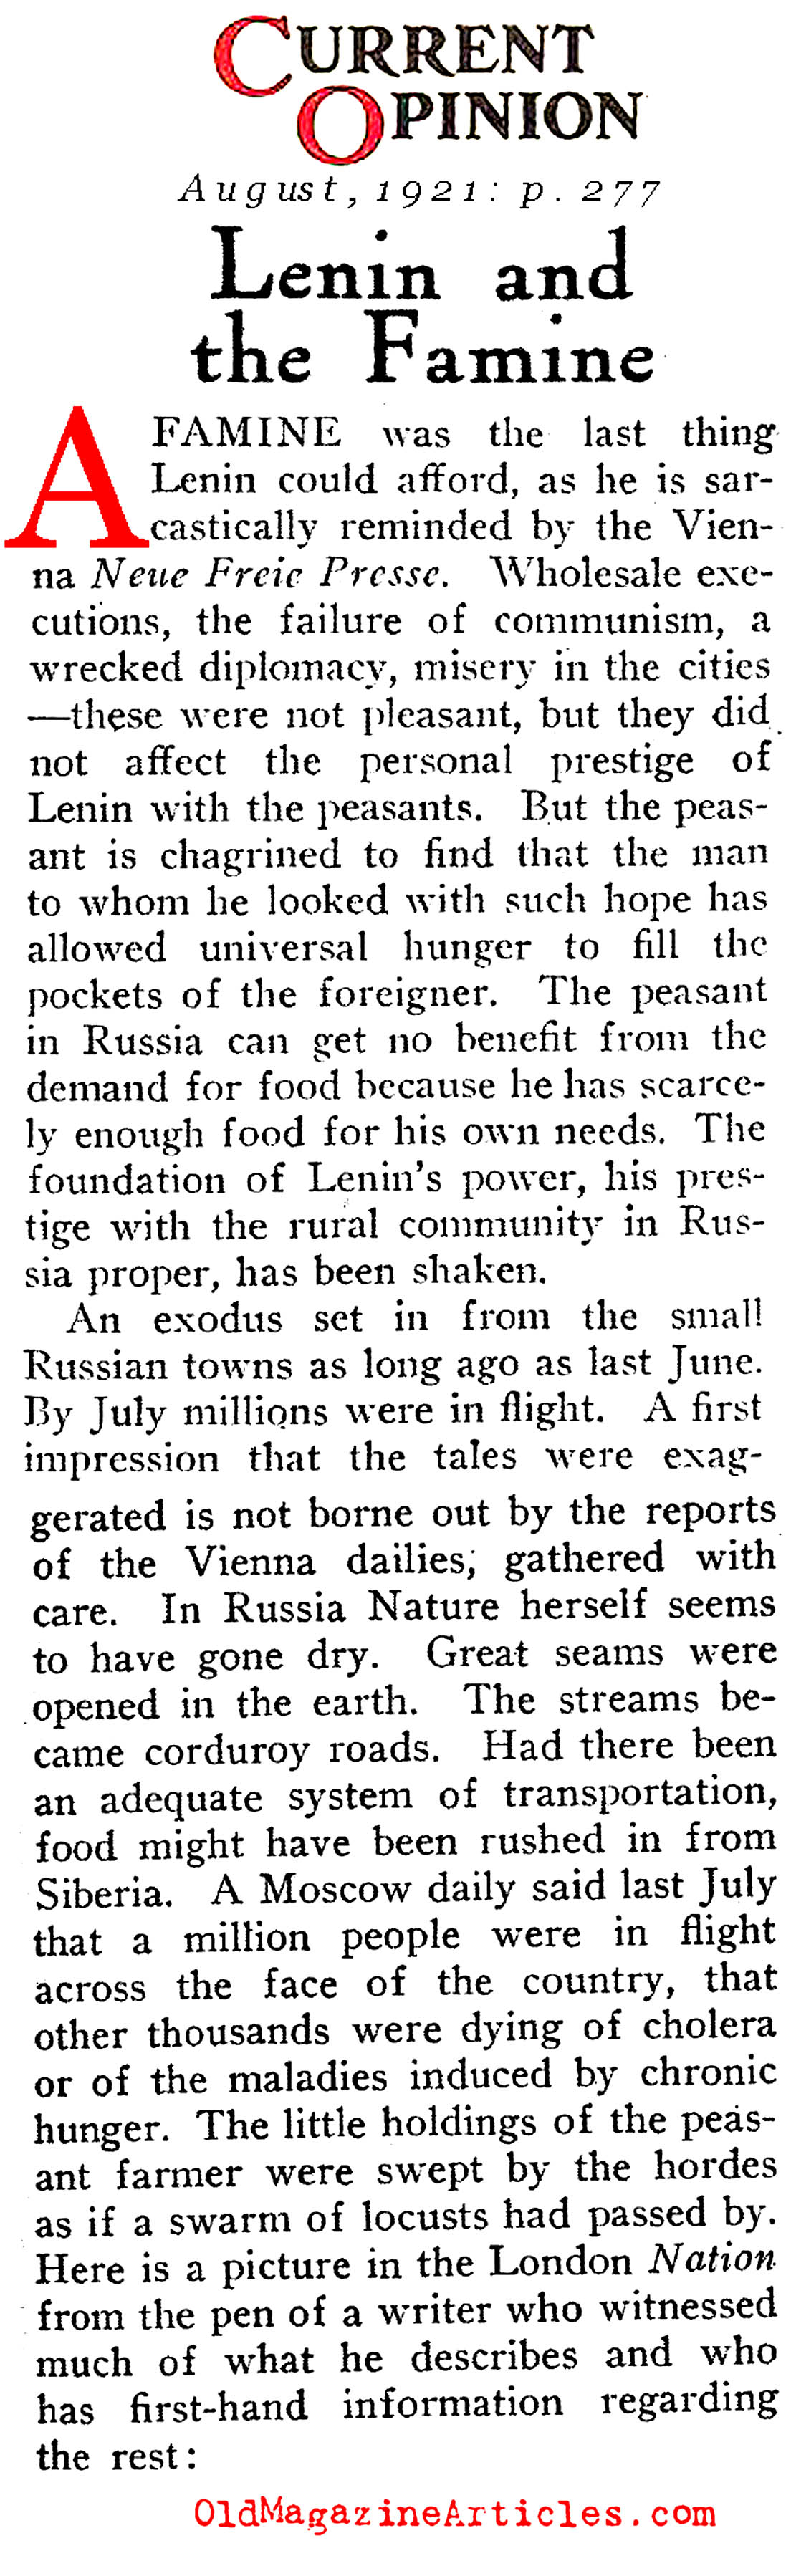 Starvation in the Worker's Paradise  (Current Opinion, 1921)